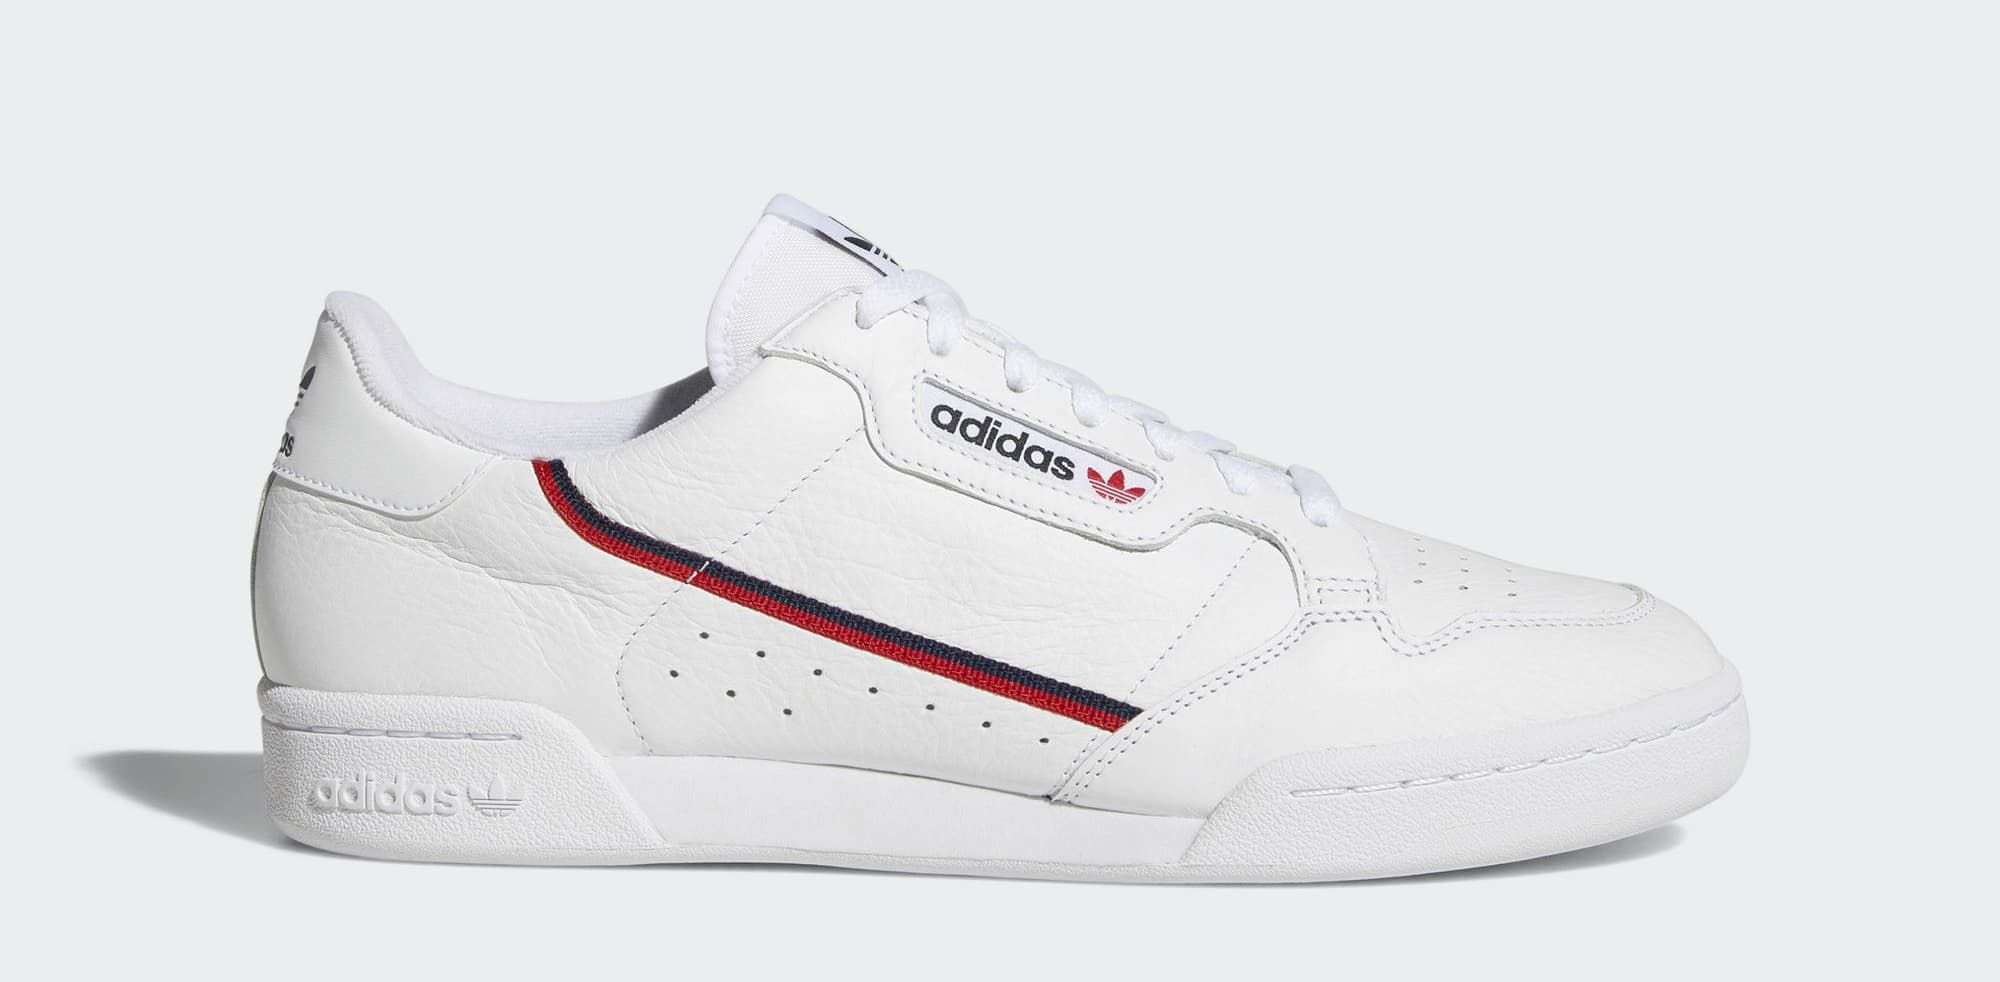 check out a9a8c 1a5f7 Adidas Originals Continental 80 Rascal B41674 Release Date   Sole Collector